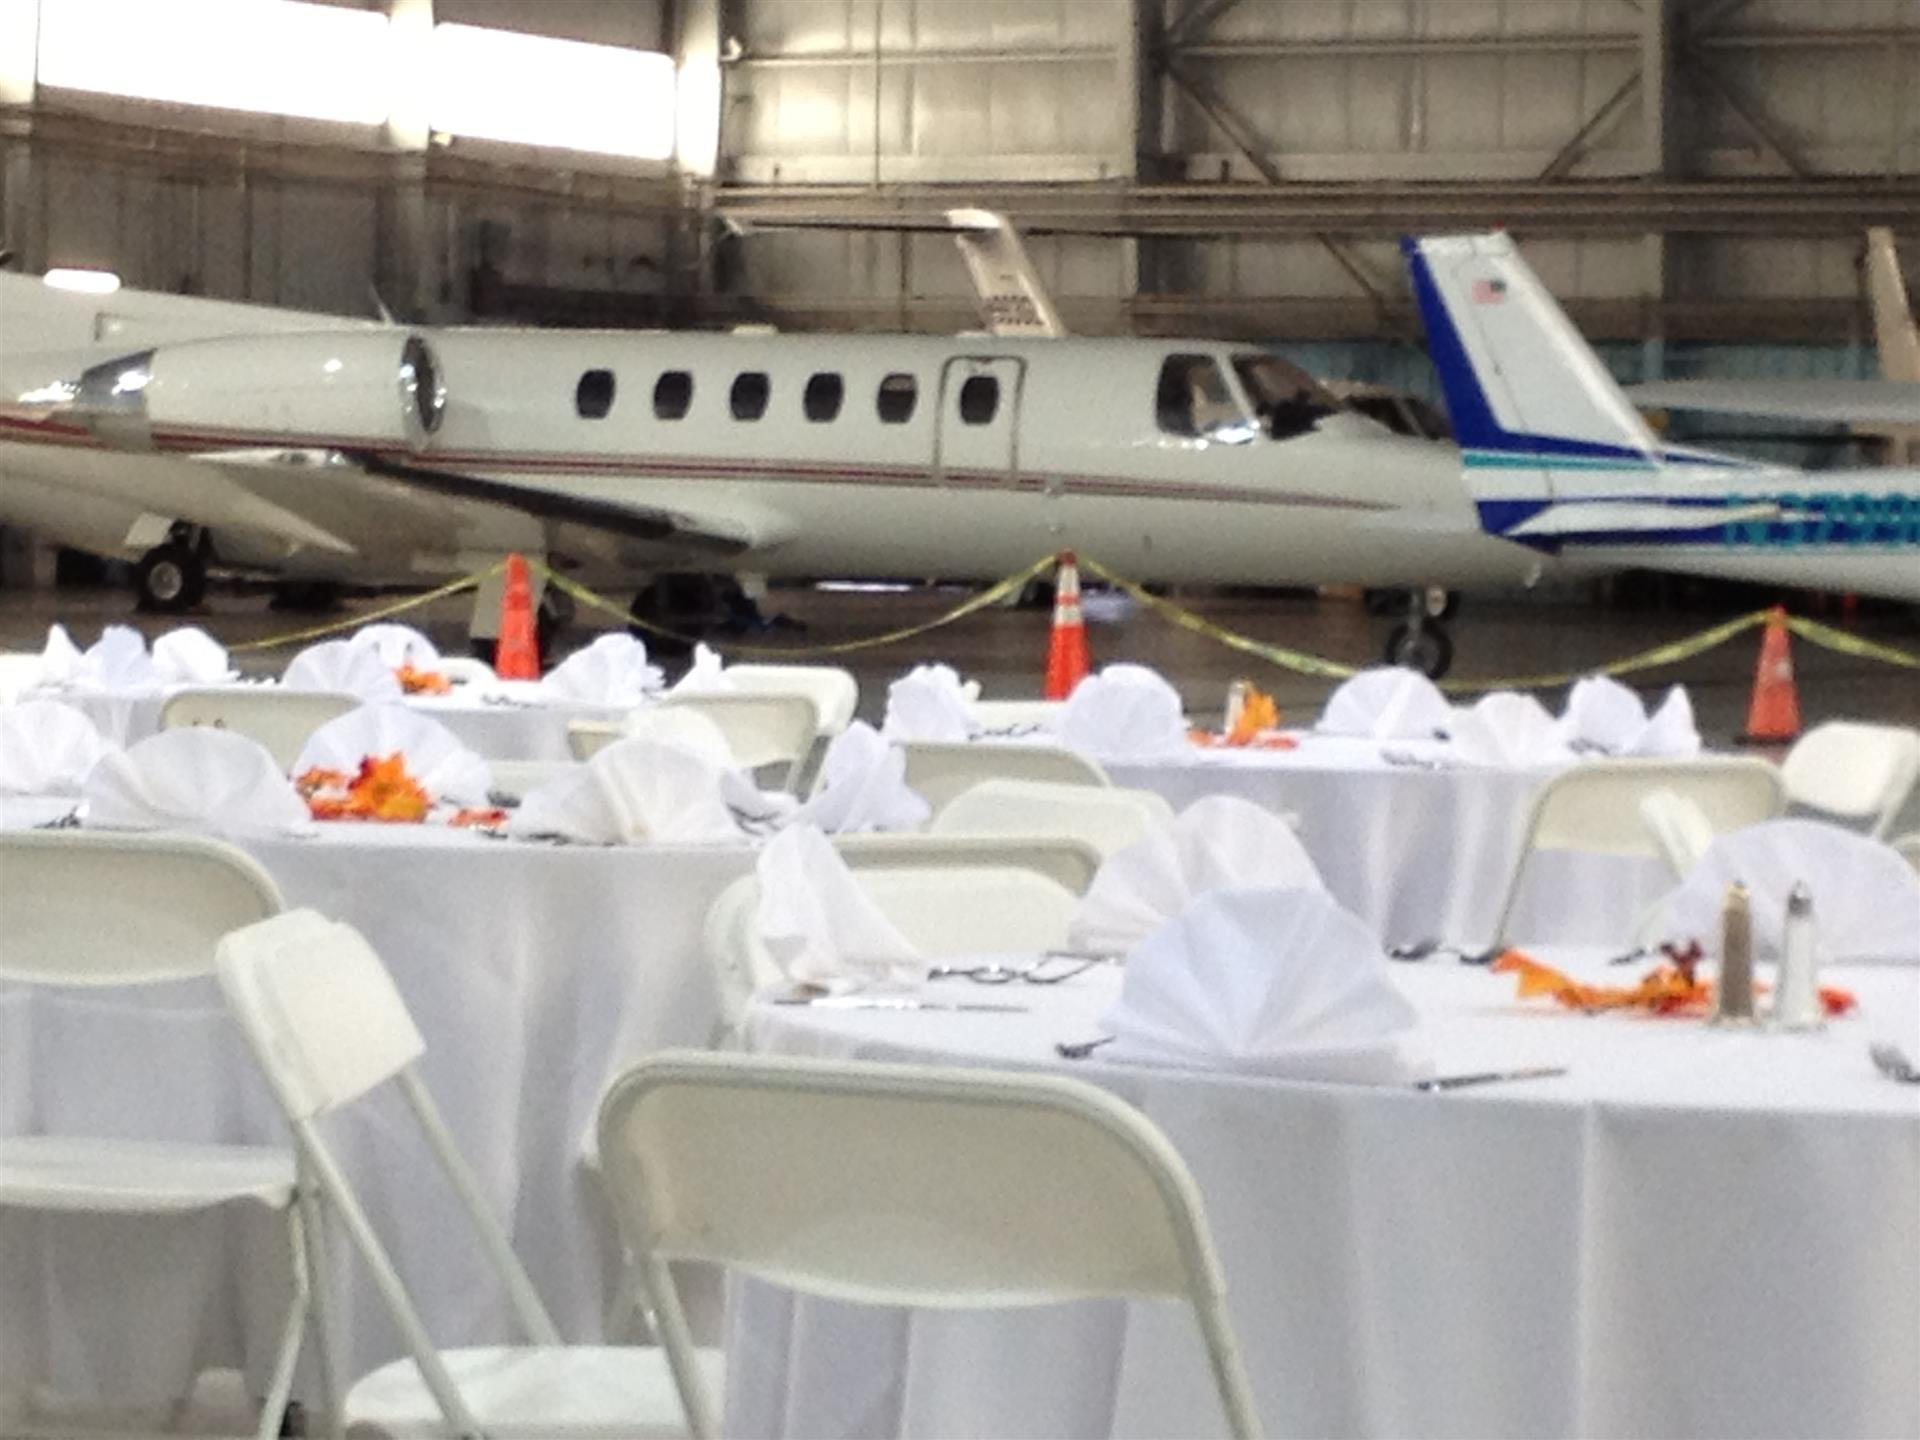 banquet tables set in an airplane hander with airplane in the background